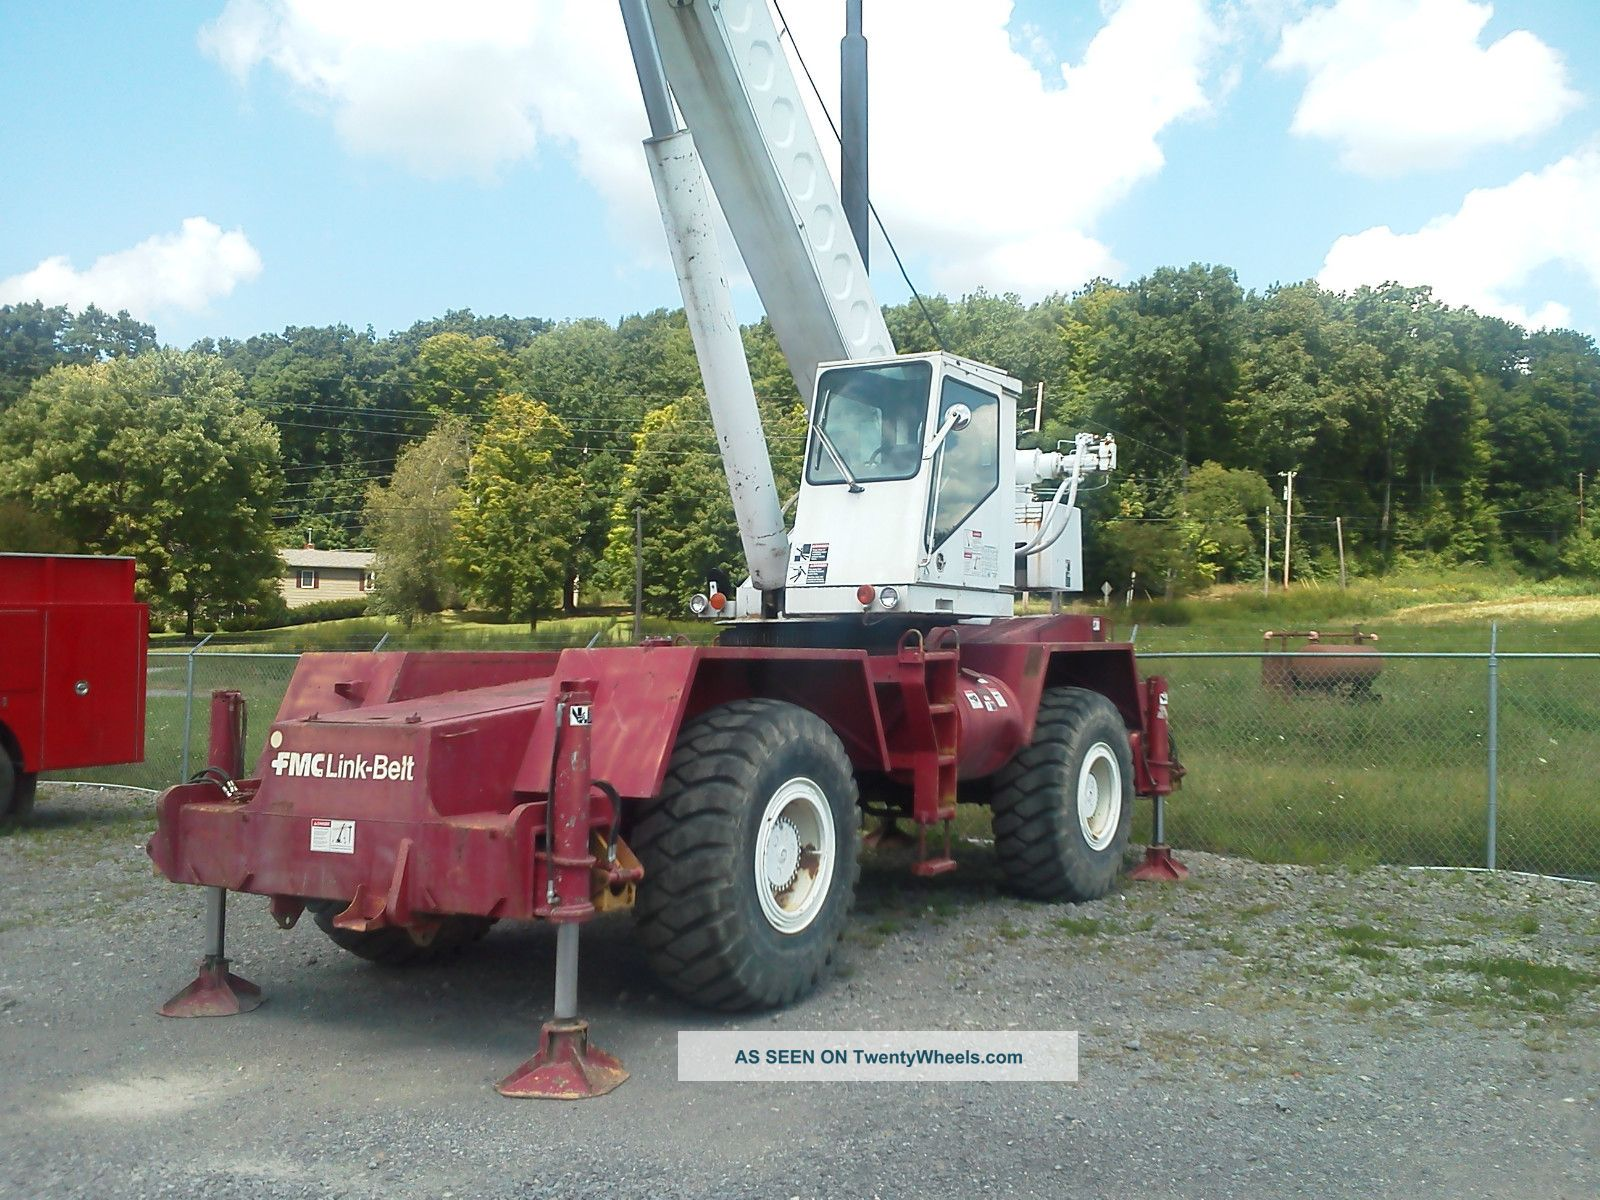 Link Belt Hsp 8030 Rough Terrain Crane 80 ' Main Boom,  No Jib. Cranes photo